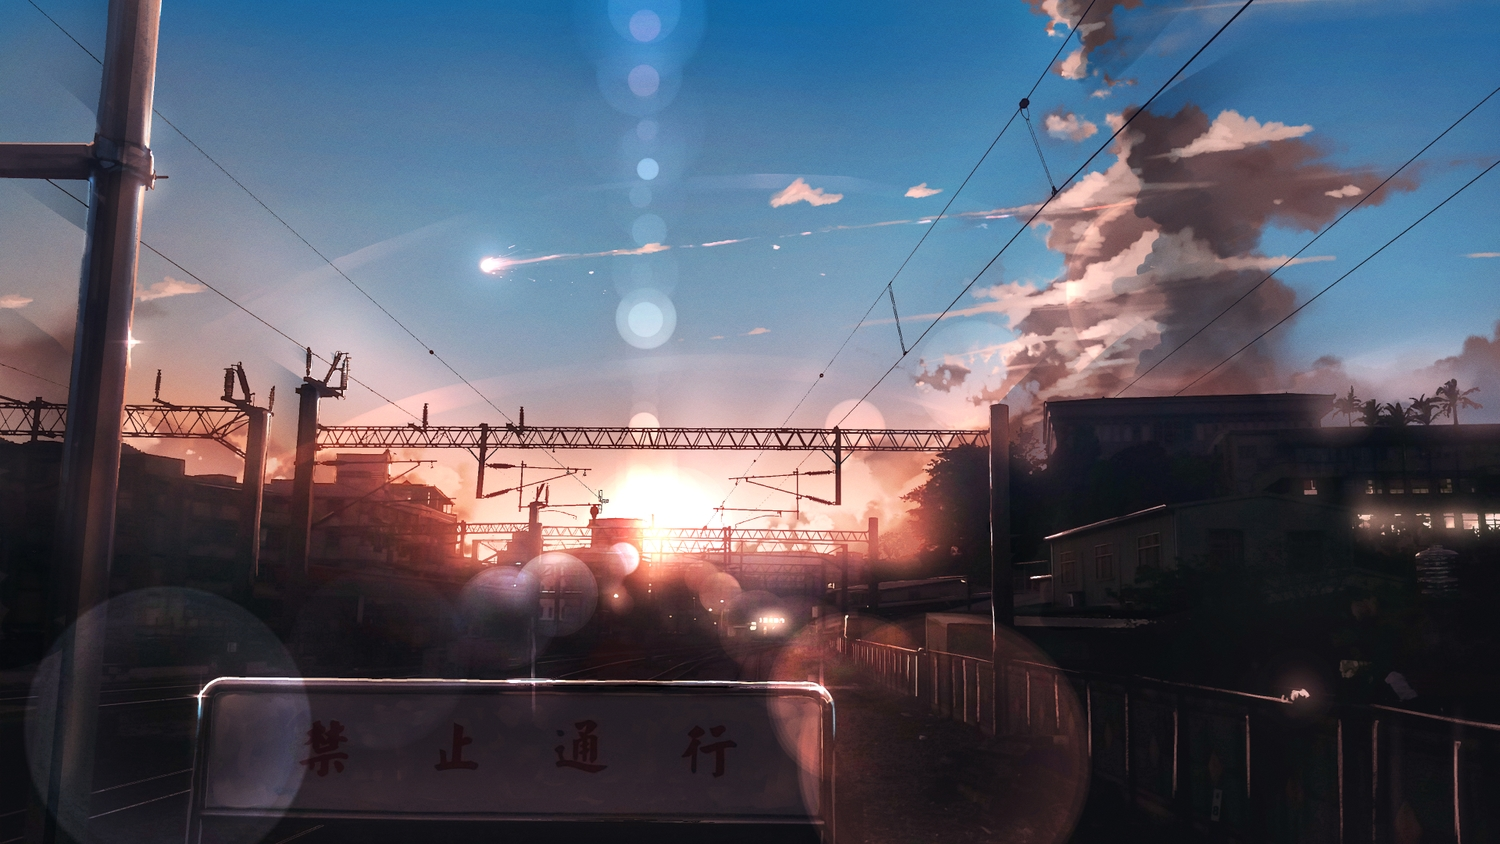 anonamos building city clouds nobody original scenic sky sunset train translation_request